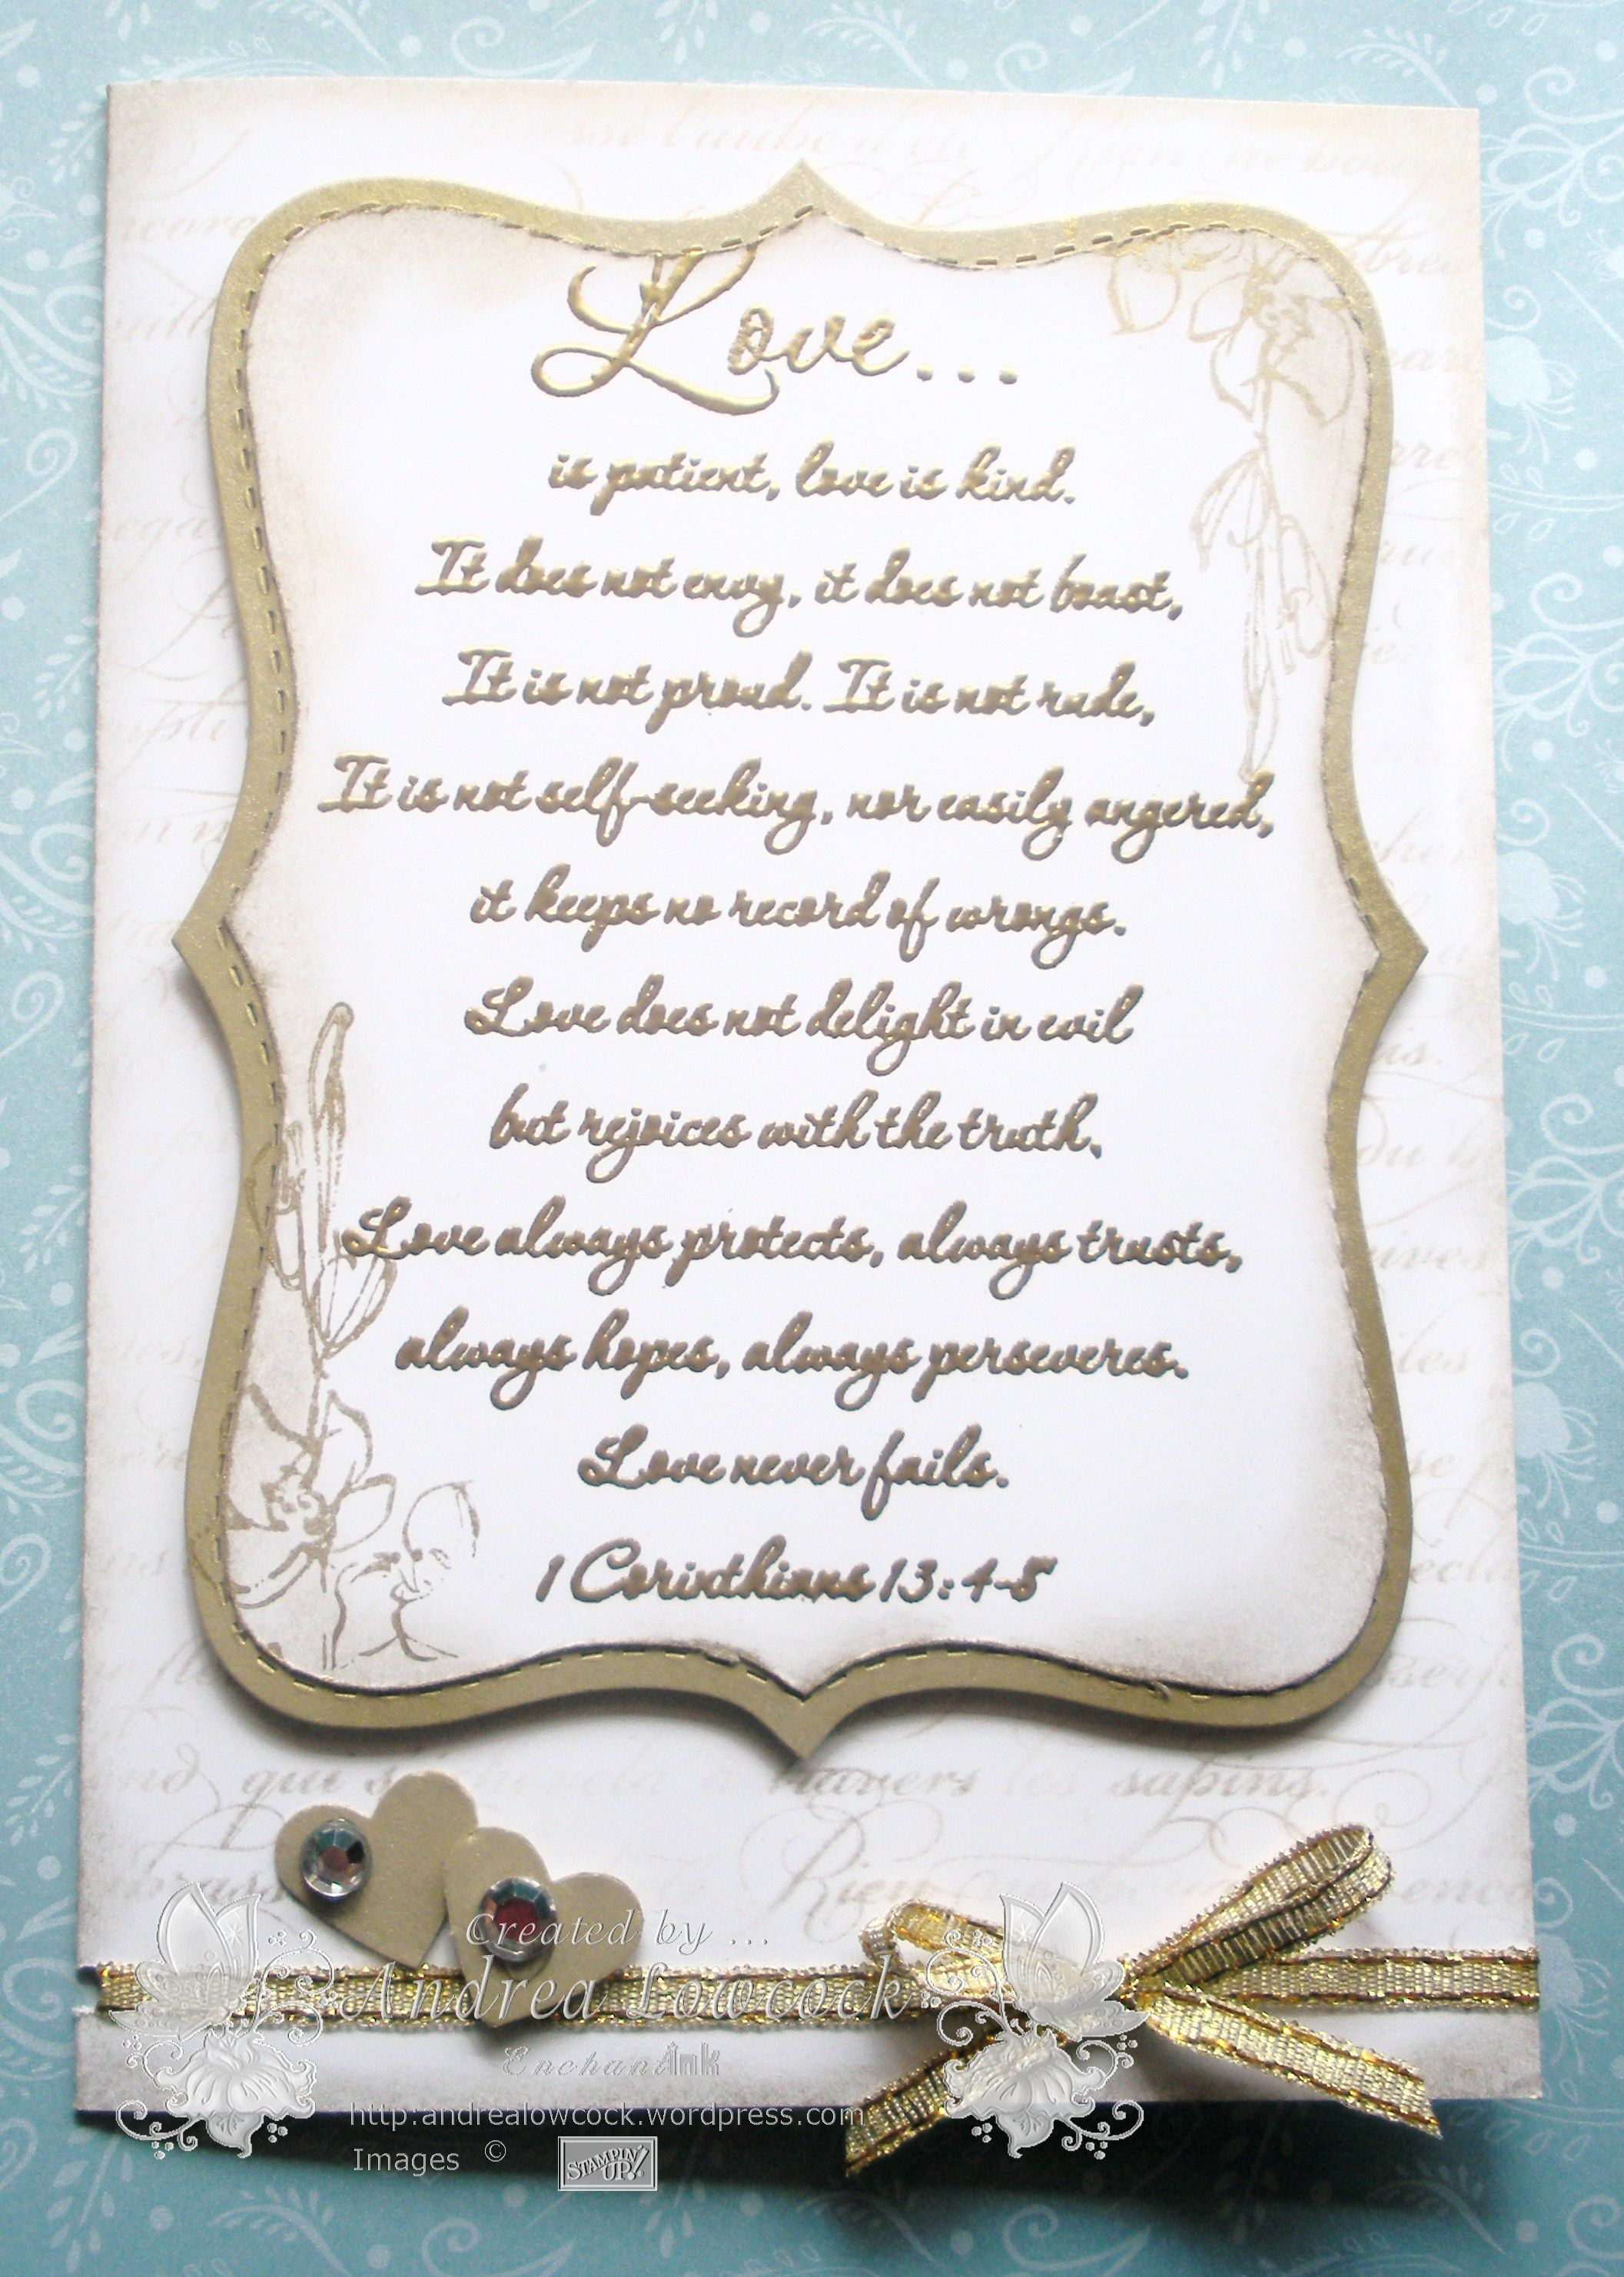 Image Result For Bible Wedding Anniversary Wishes